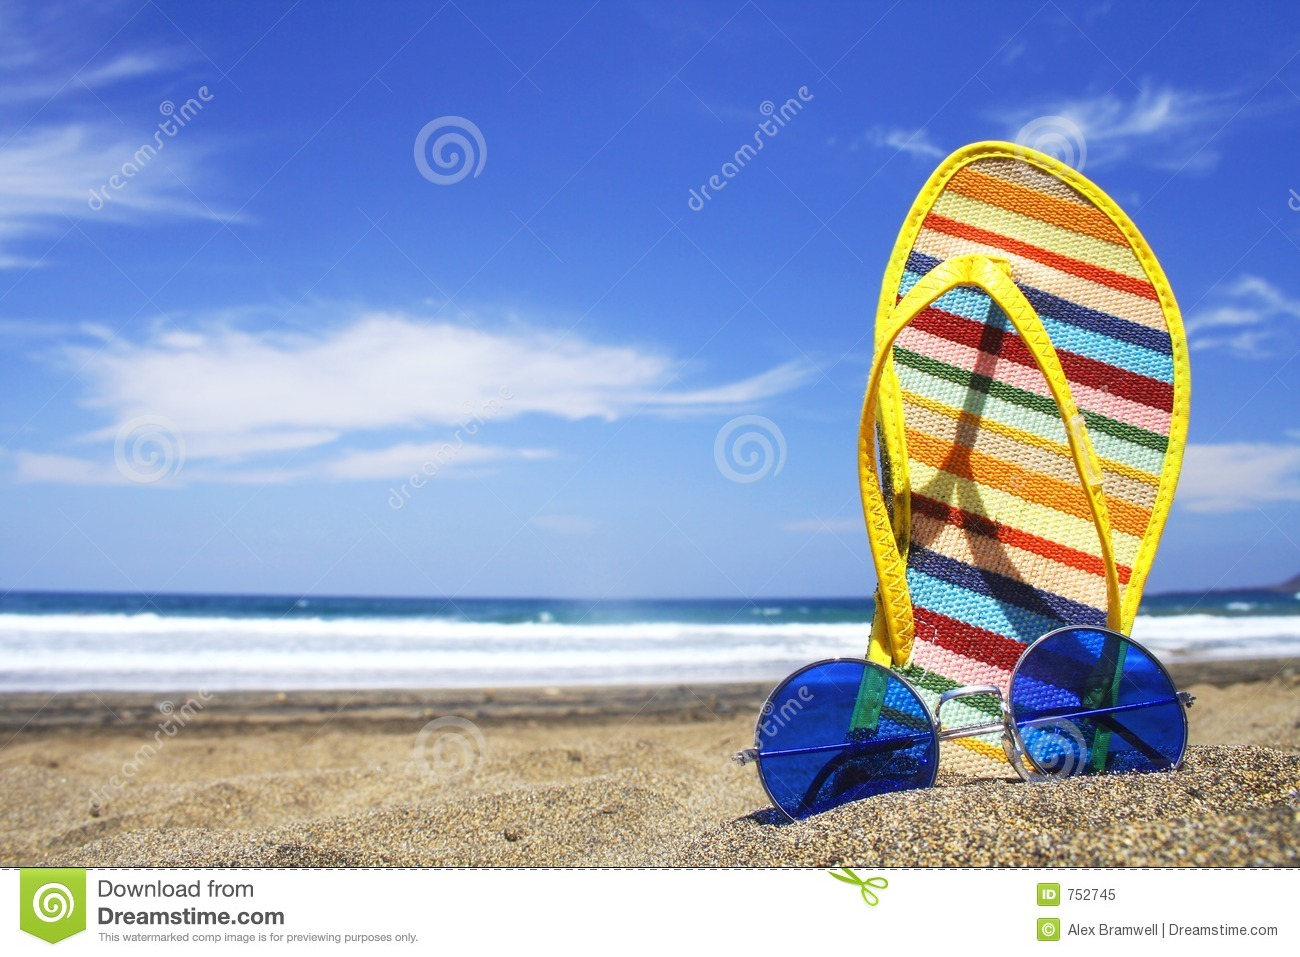 Summer Beach Scene Clipart Images & Pictures - Becuo